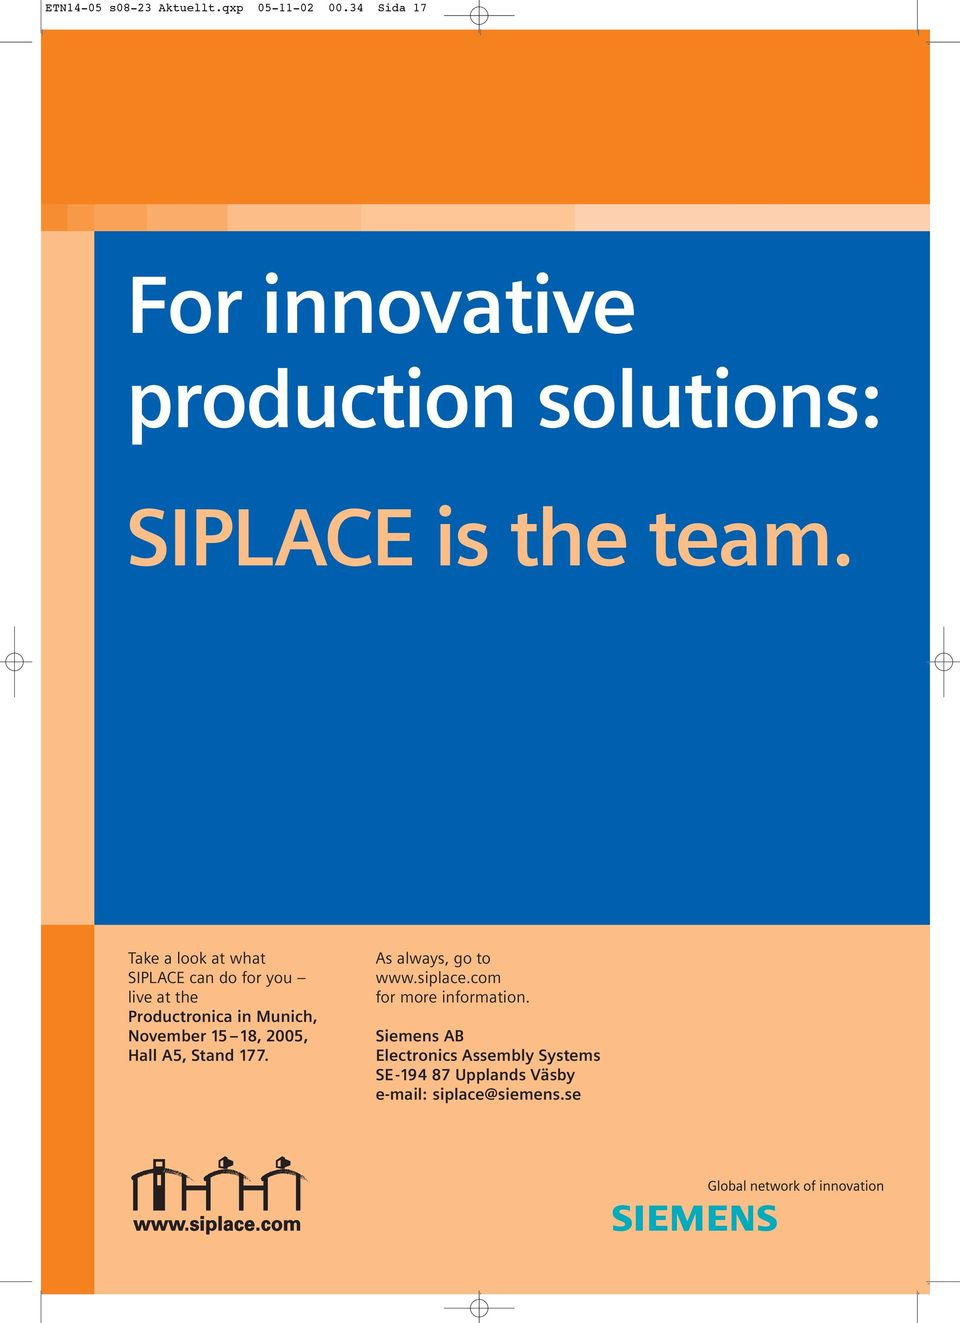 Take a look at what SIPLACE can do for you live at the Productronica in Munich, November 15